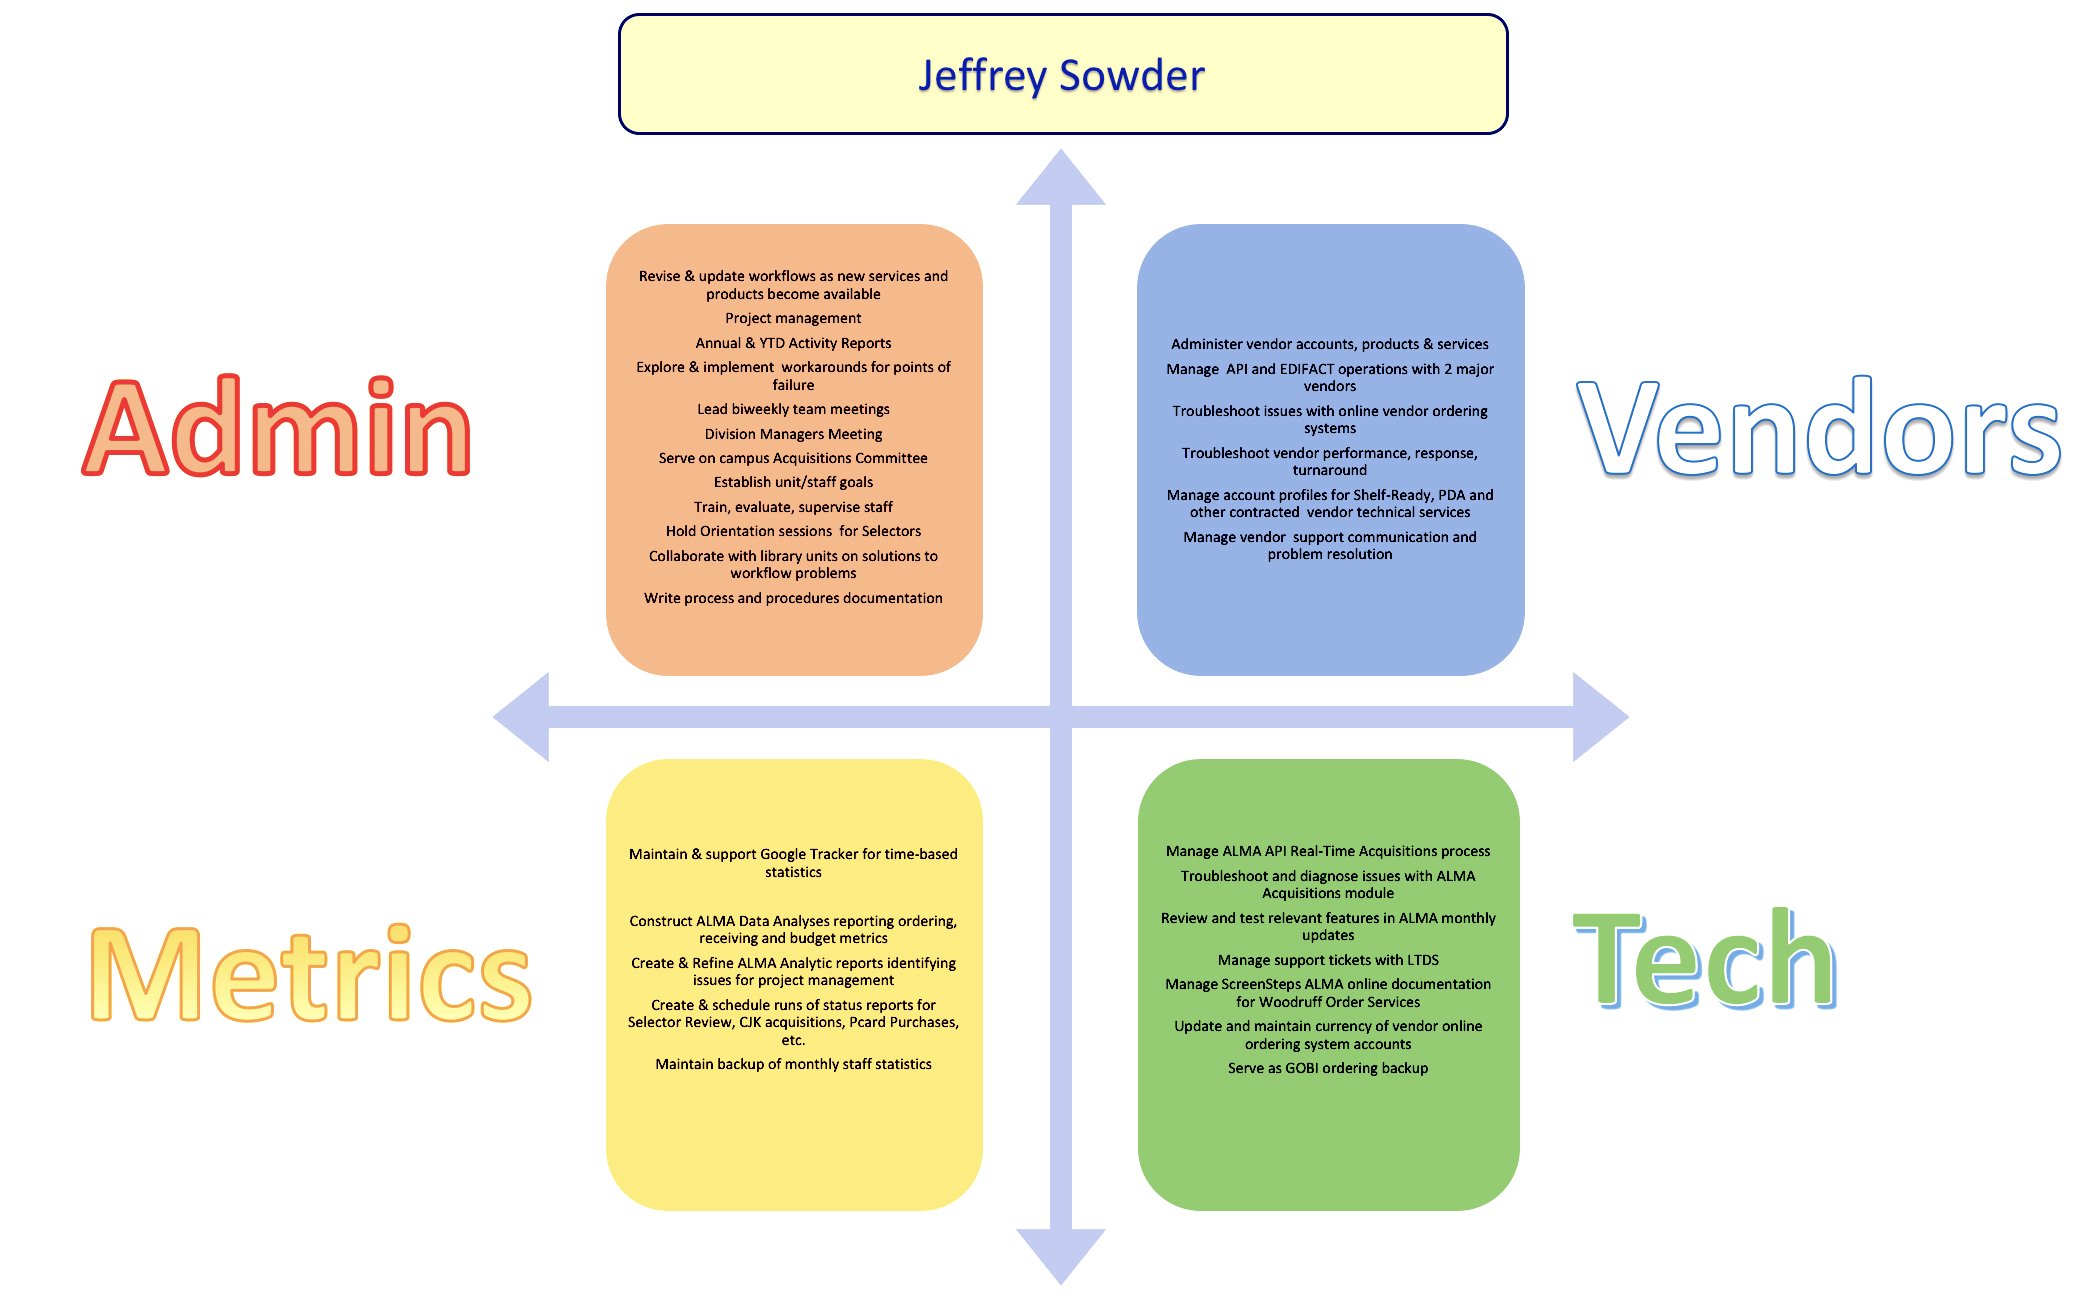 Graphic lists 4 areas of responsibility for Unit Manger including Administration, Vendor Management, Technology and Metrics